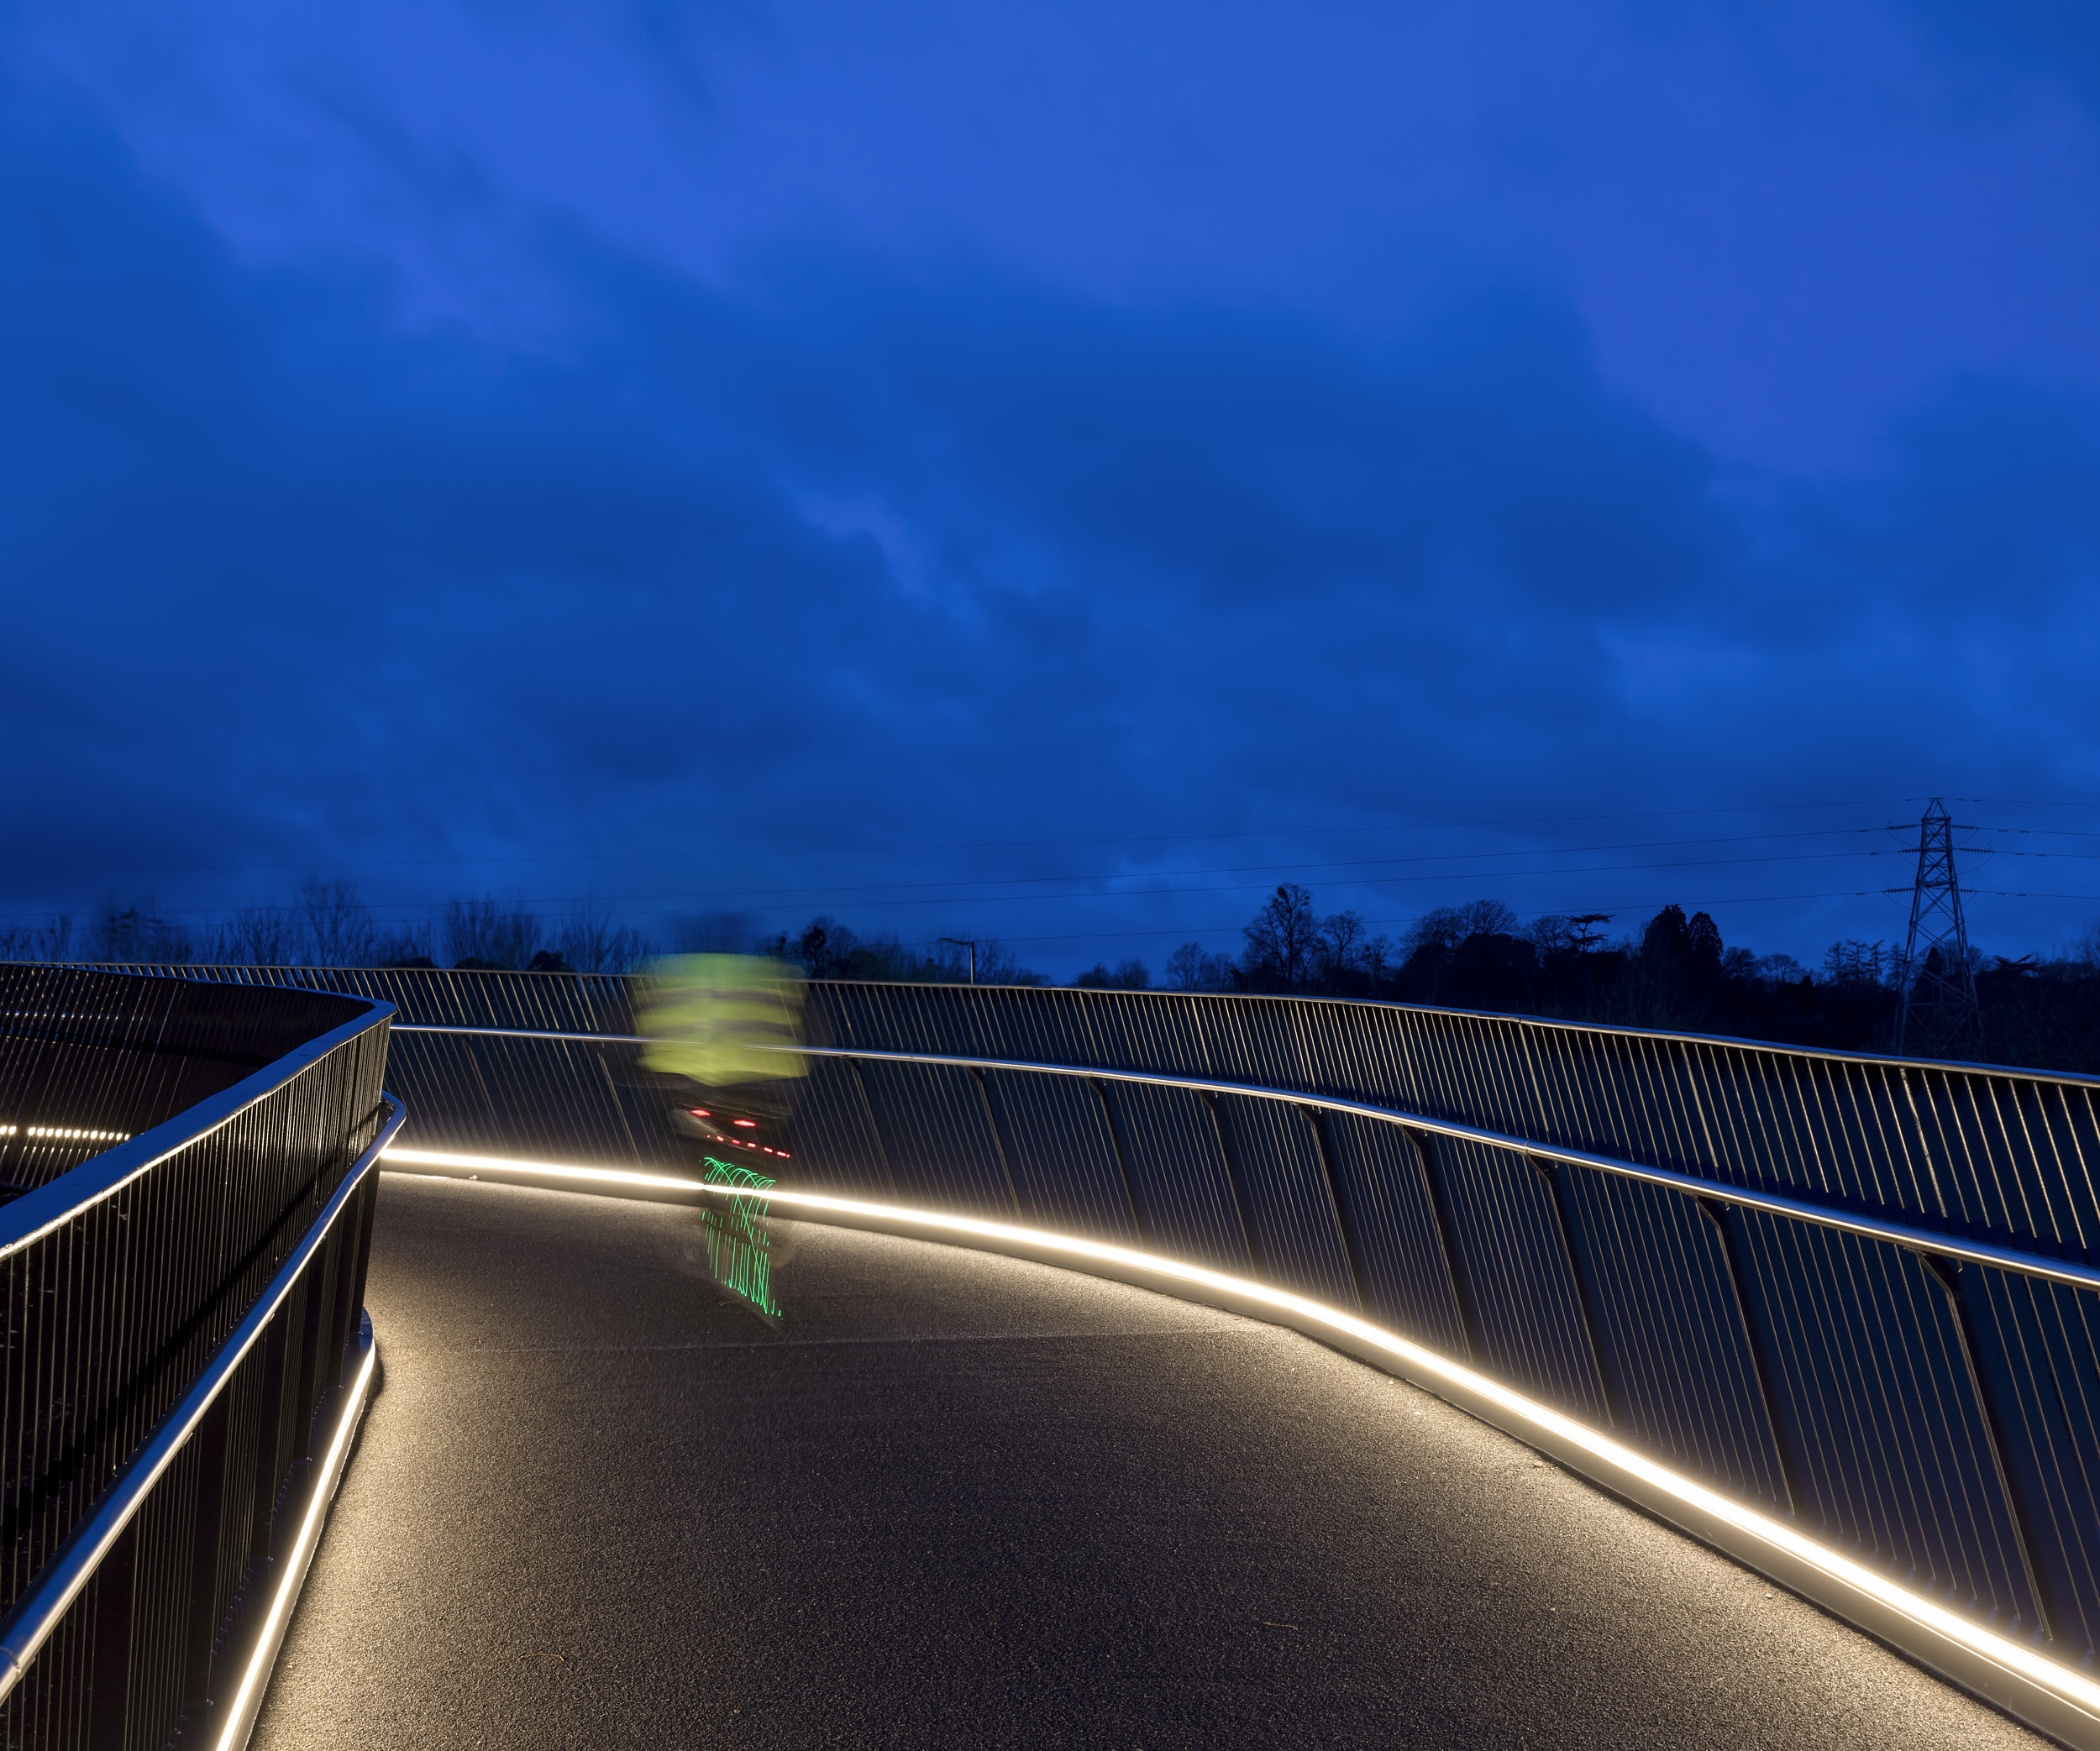 Night photography of a cyclist using the new bridge.